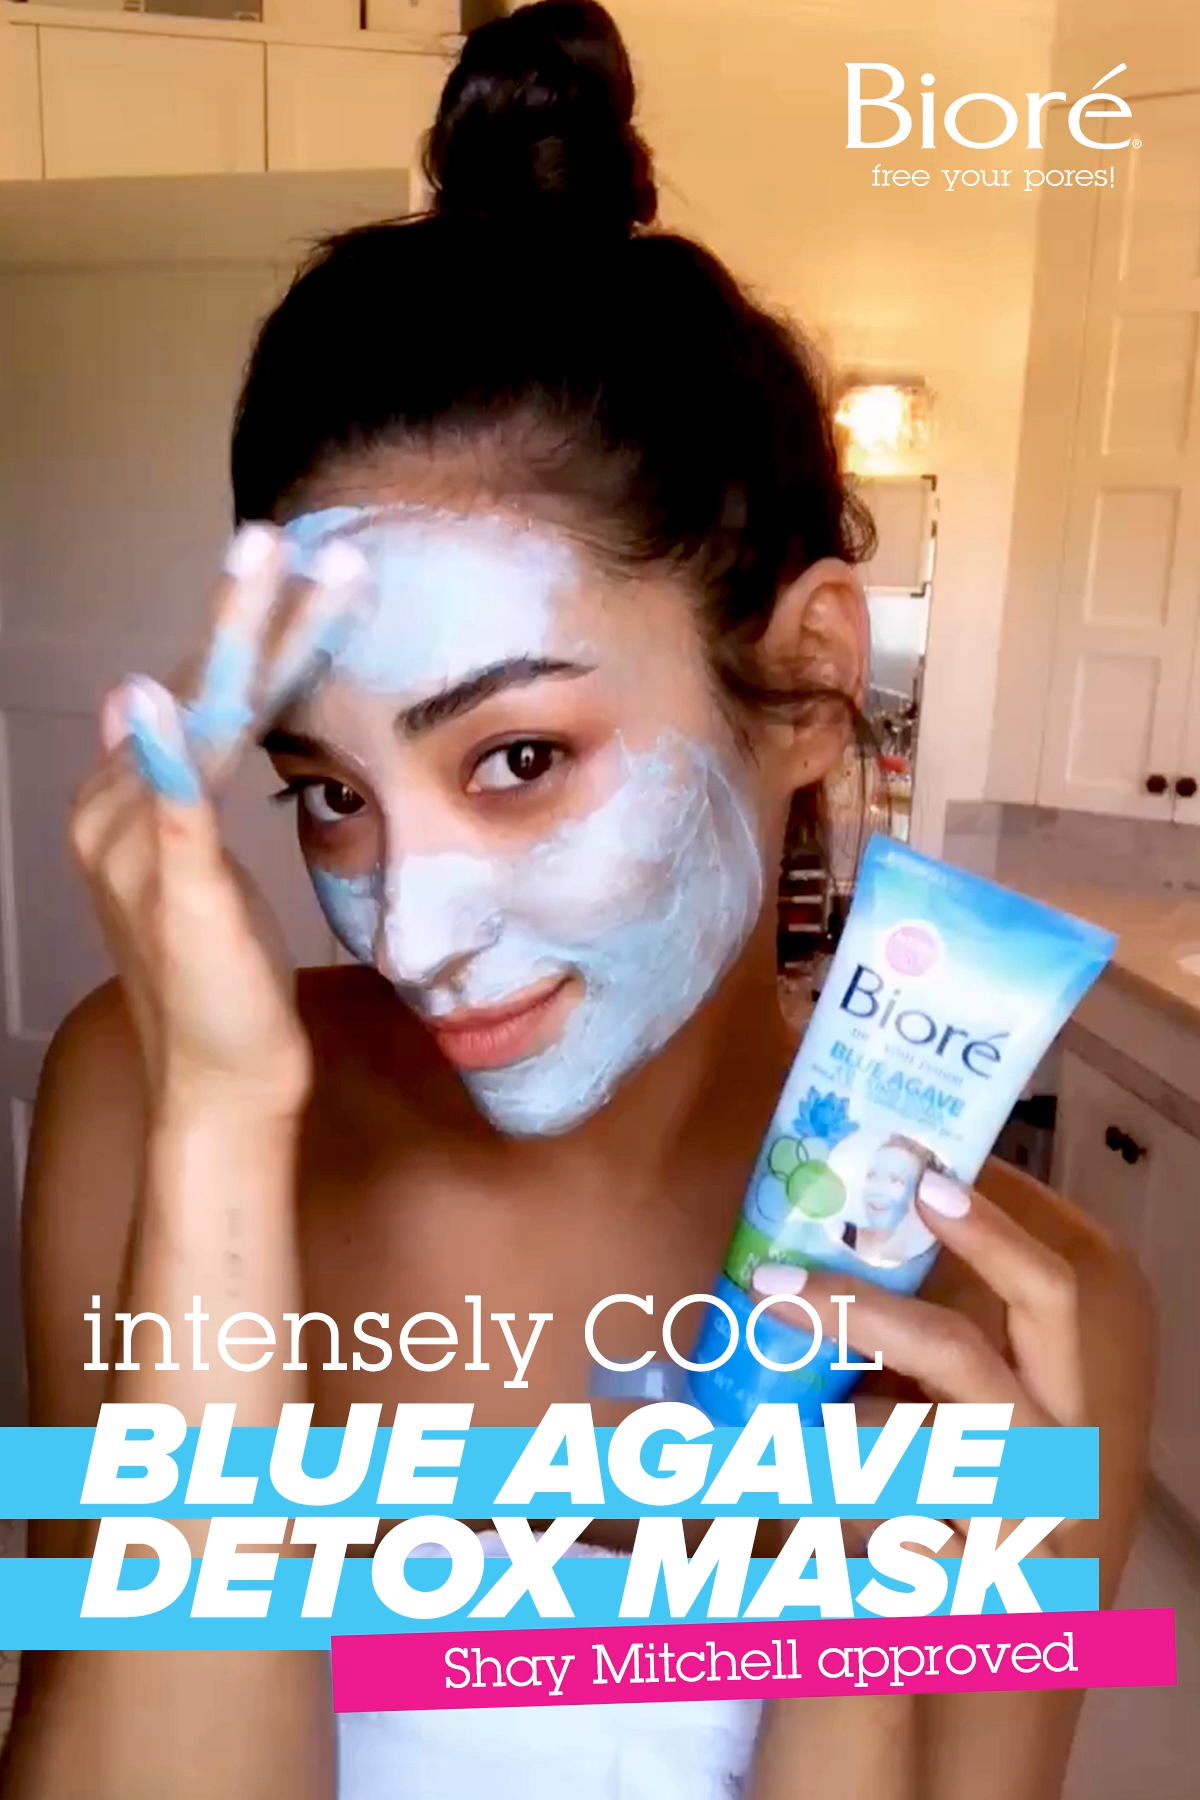 Shay Mitchell LOVES our Intense Blue Agave Whipped Detox Mask